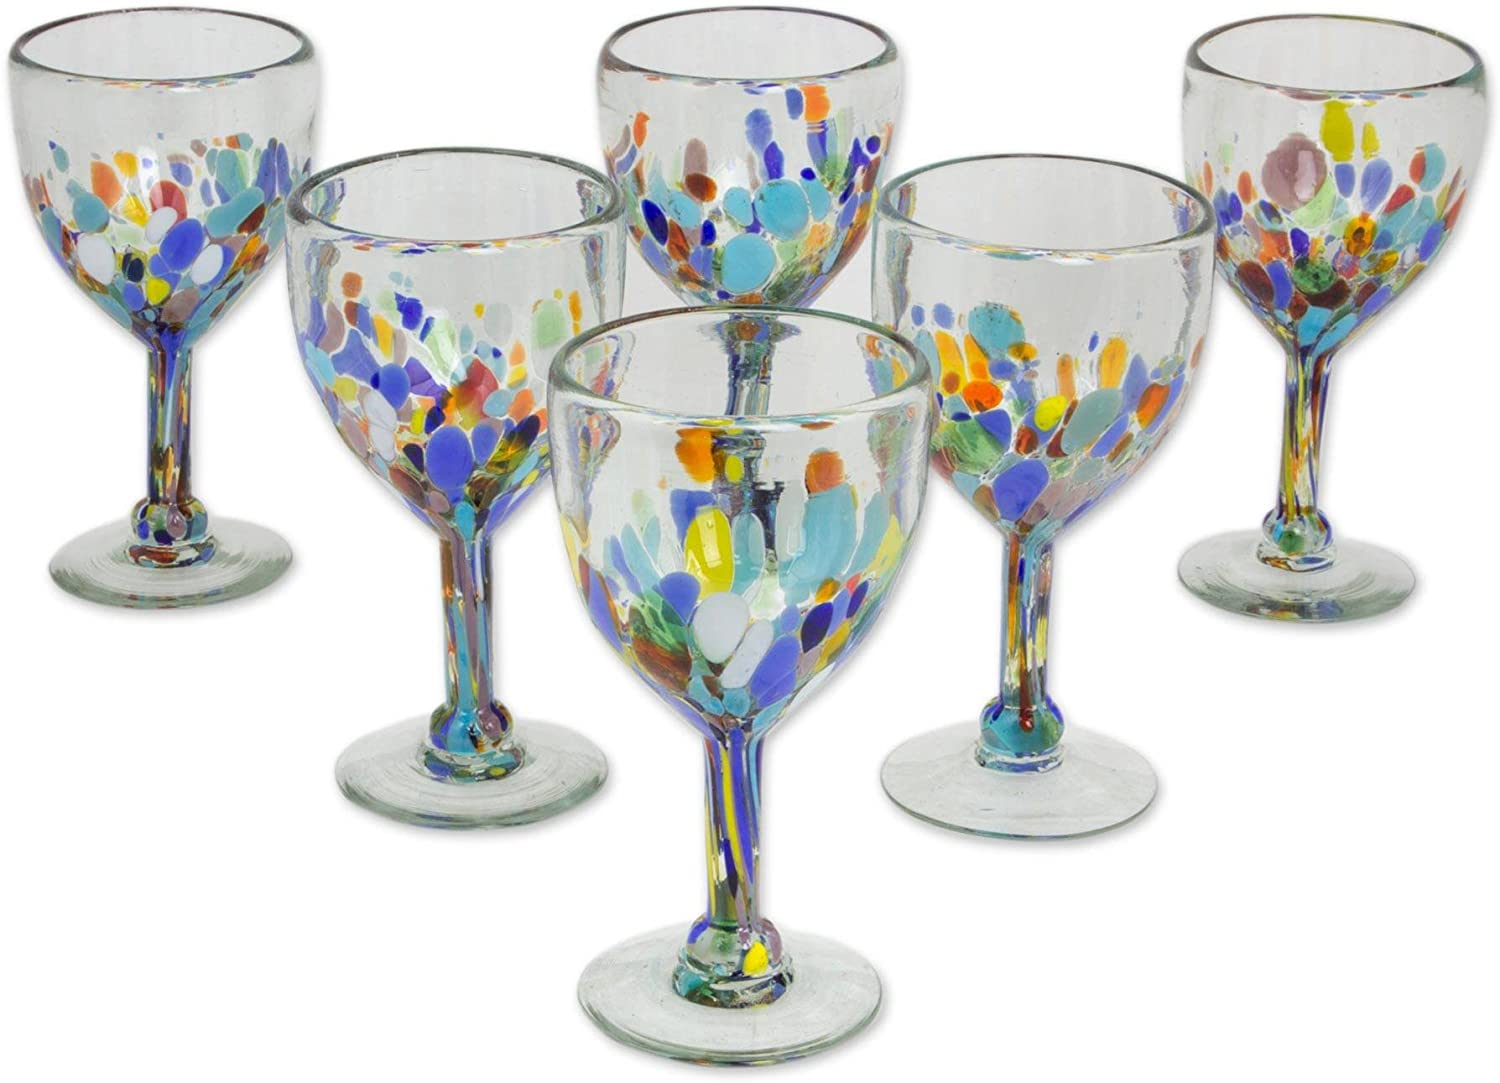 novica hand blown multicolor recycled glass isolated on white background